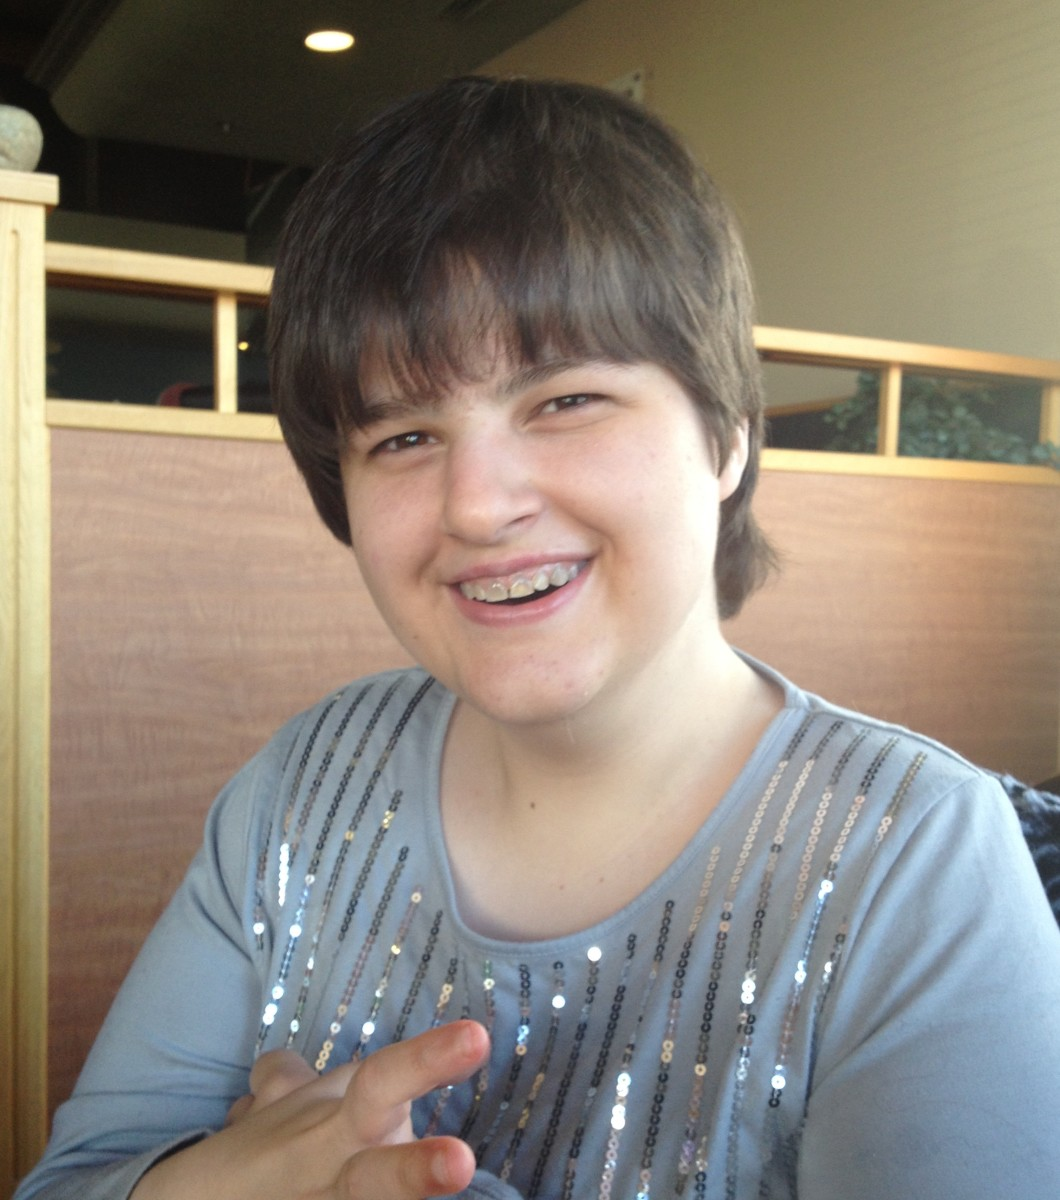 Brittany, has UPD Angelman Syndrome